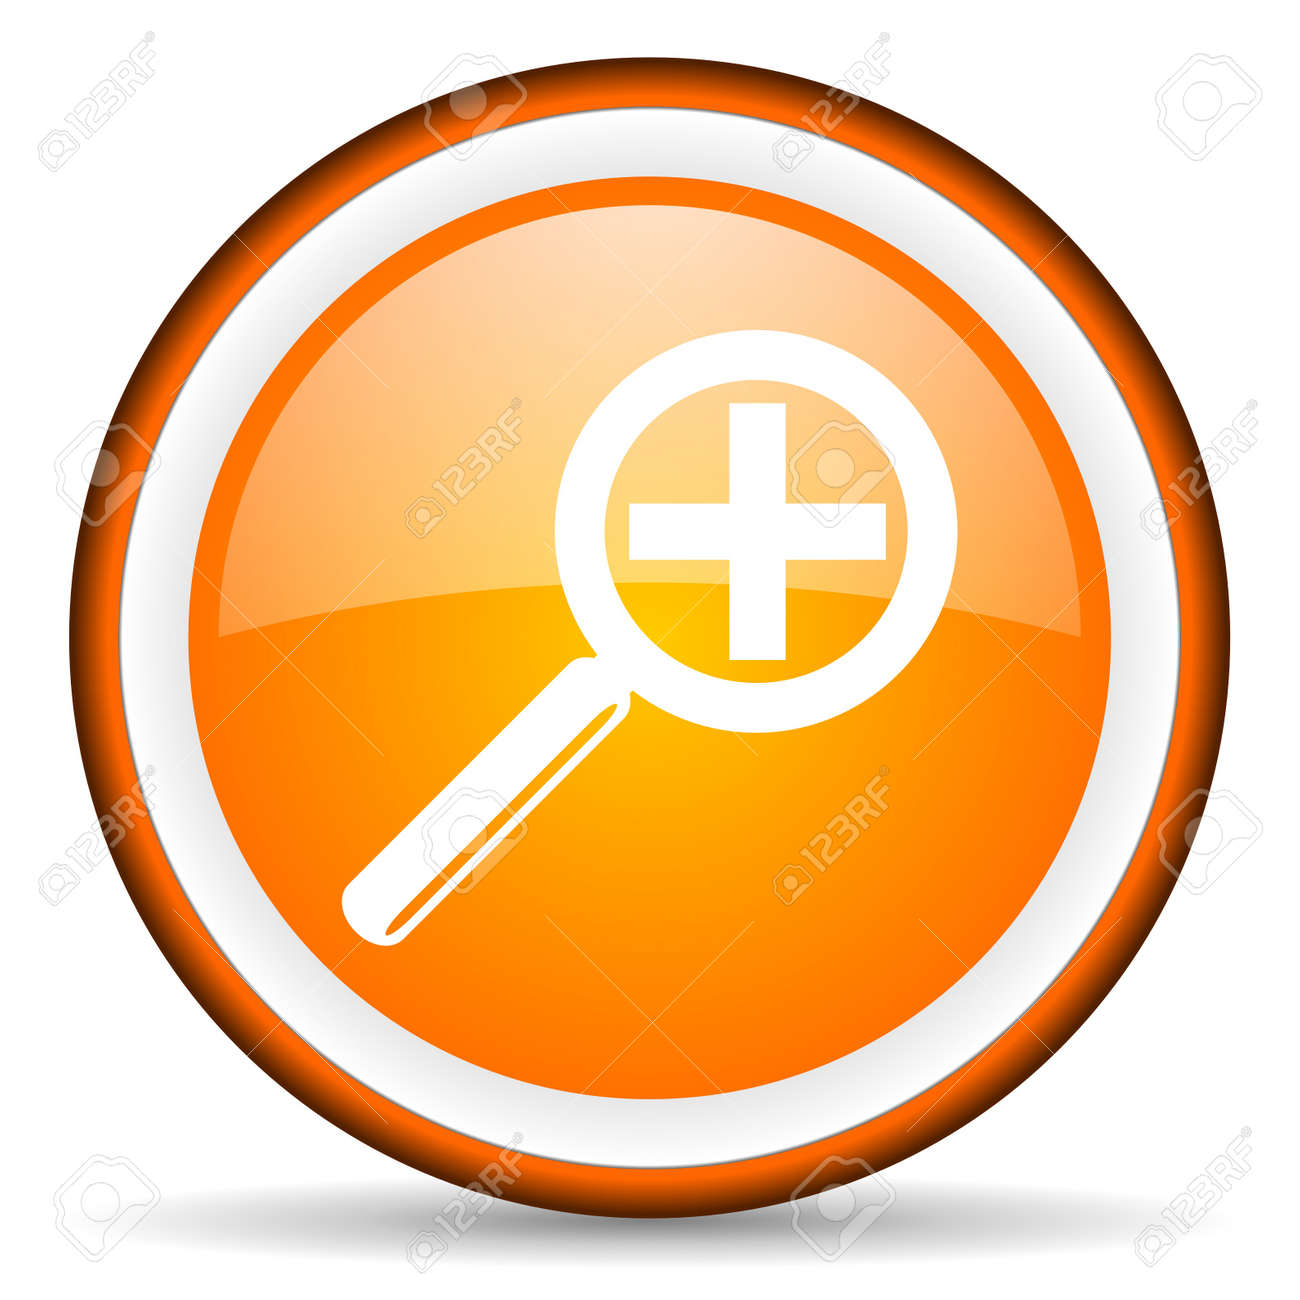 magnification orange glossy icon on white background Stock Photo - 17065993